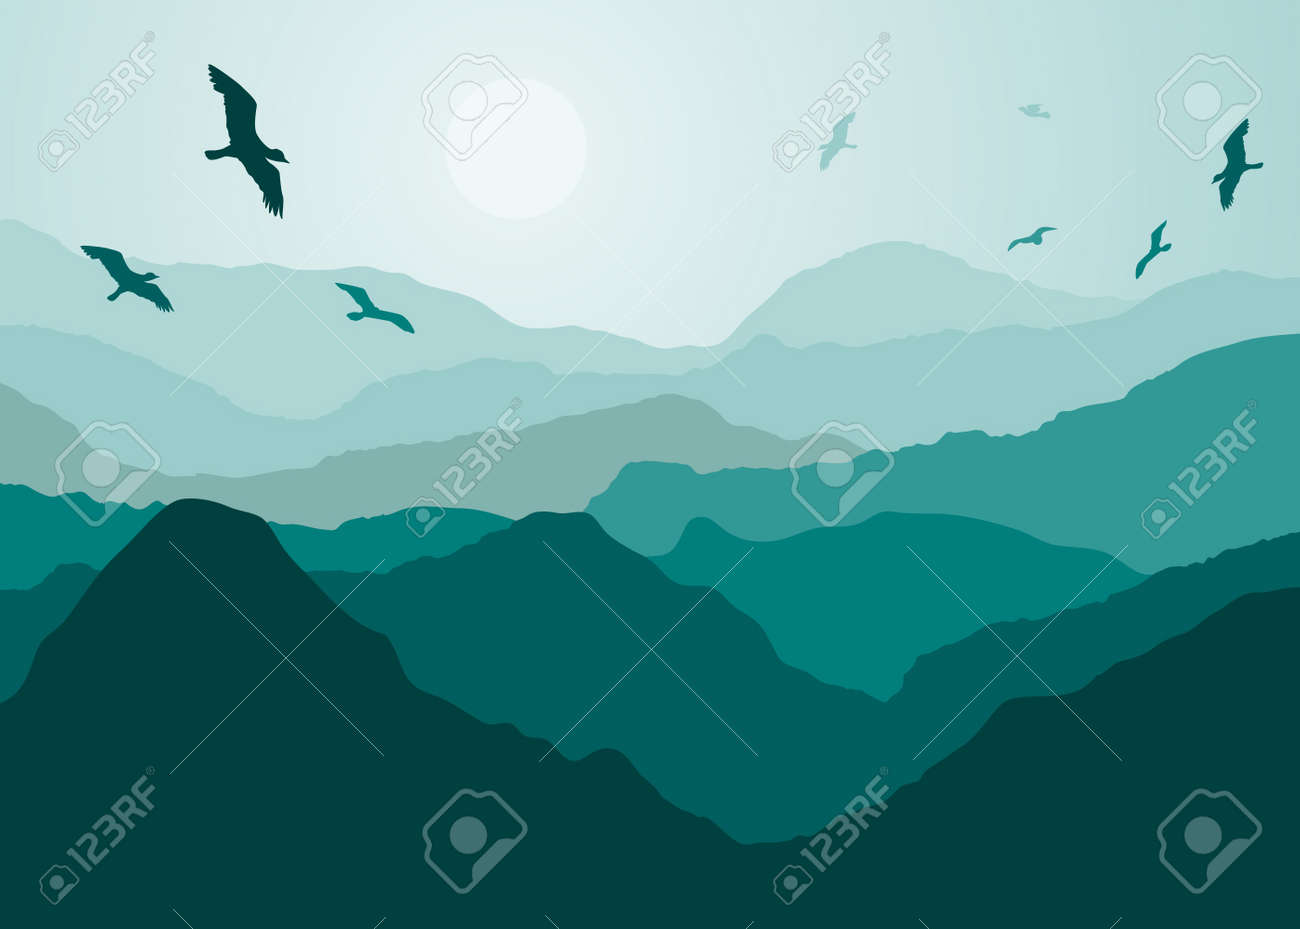 Birds over the mountain landmark Stock Vector - 18384423